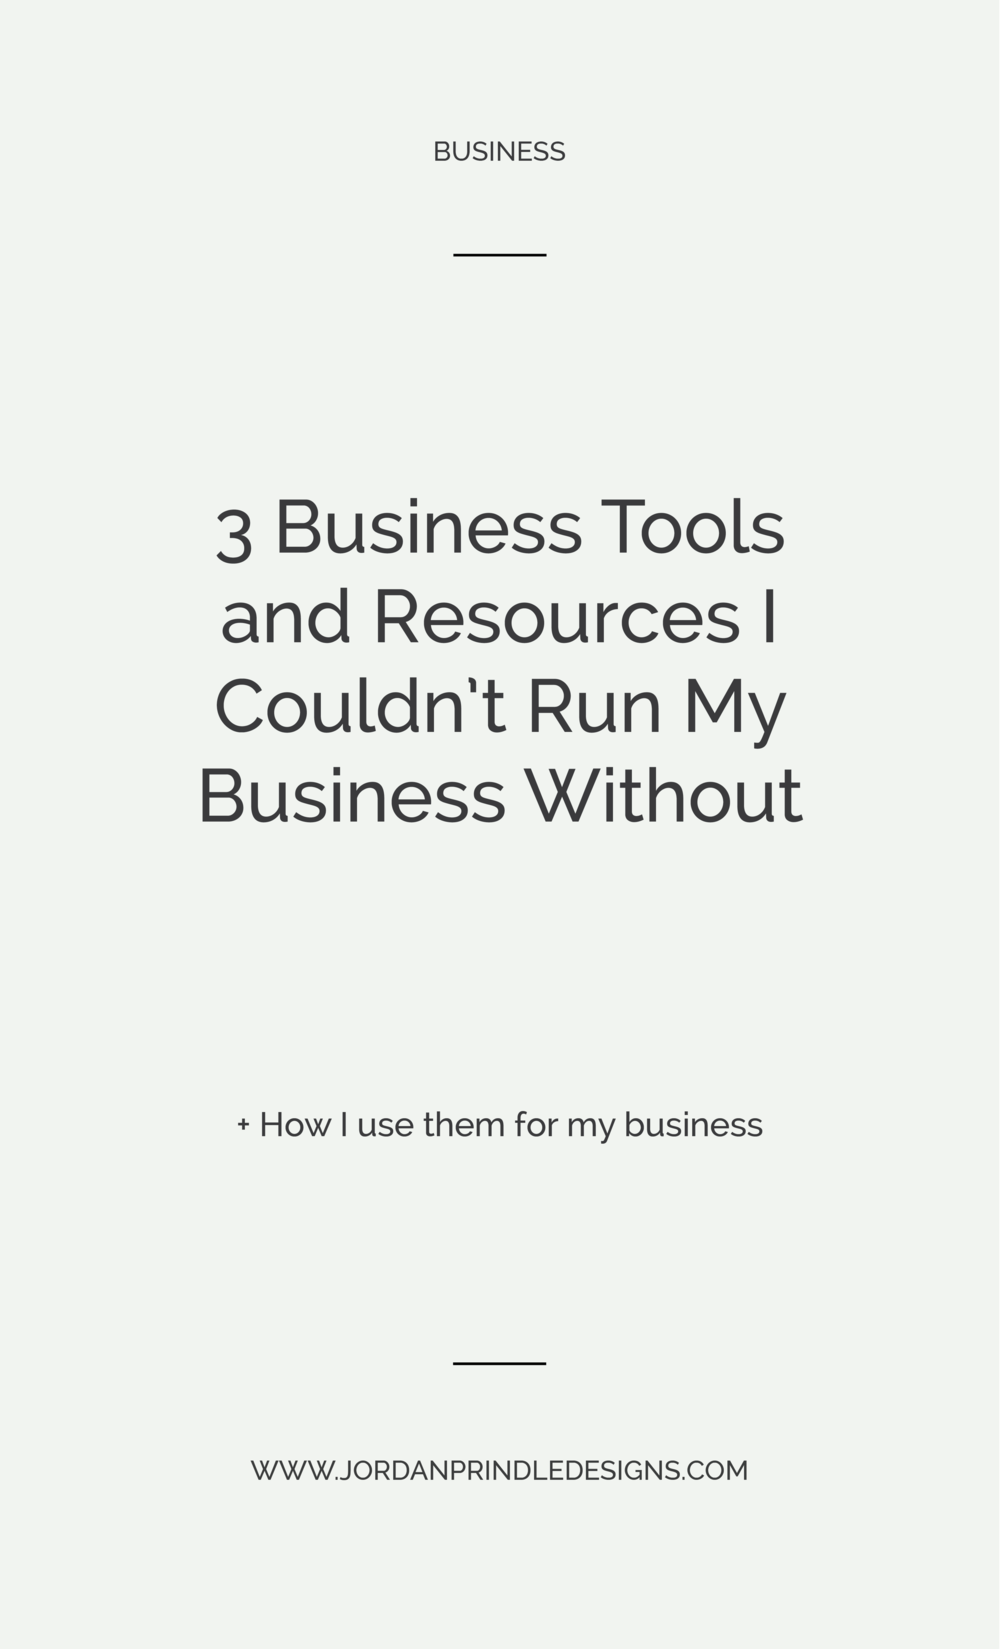 3 Business Tools I Couldn't Run My Business Without | From project management tools to client work to daily to-do's read the full post on www.jordanprindledesigns.com #branddesign #businesstips #smallbusiness